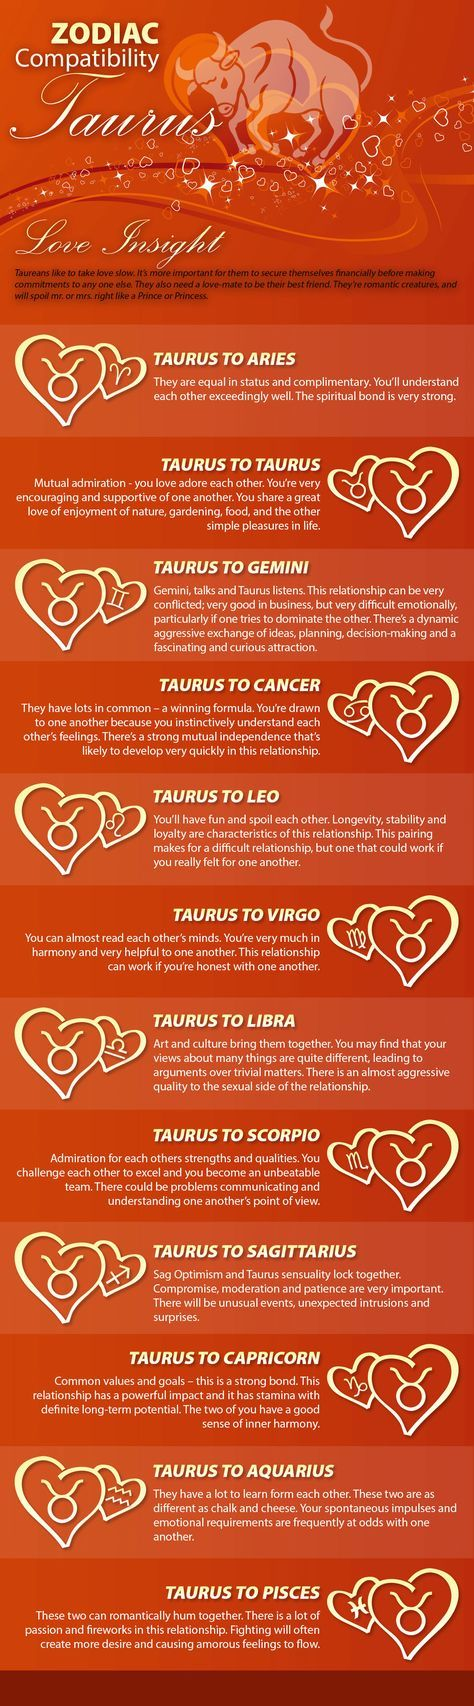 Taurus compatibility astrology pinterest taurus taurus taurus compatibility chart for love communication explore our relationships guide to find best astrology match for zodiac sign nvjuhfo Image collections